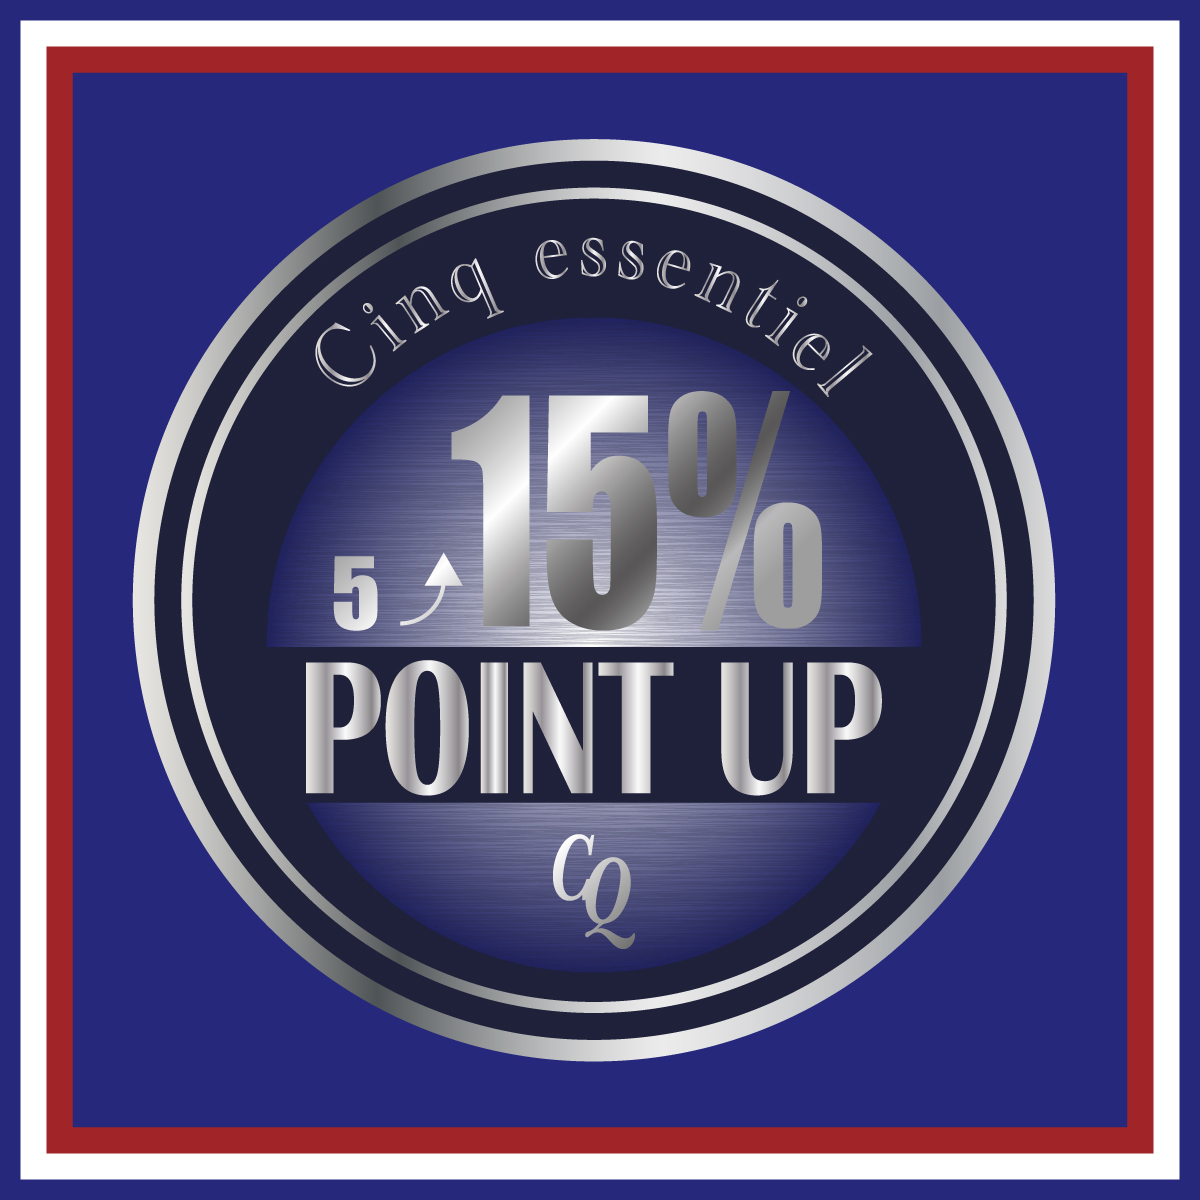 2021SS POINT UP CAMPAIGN